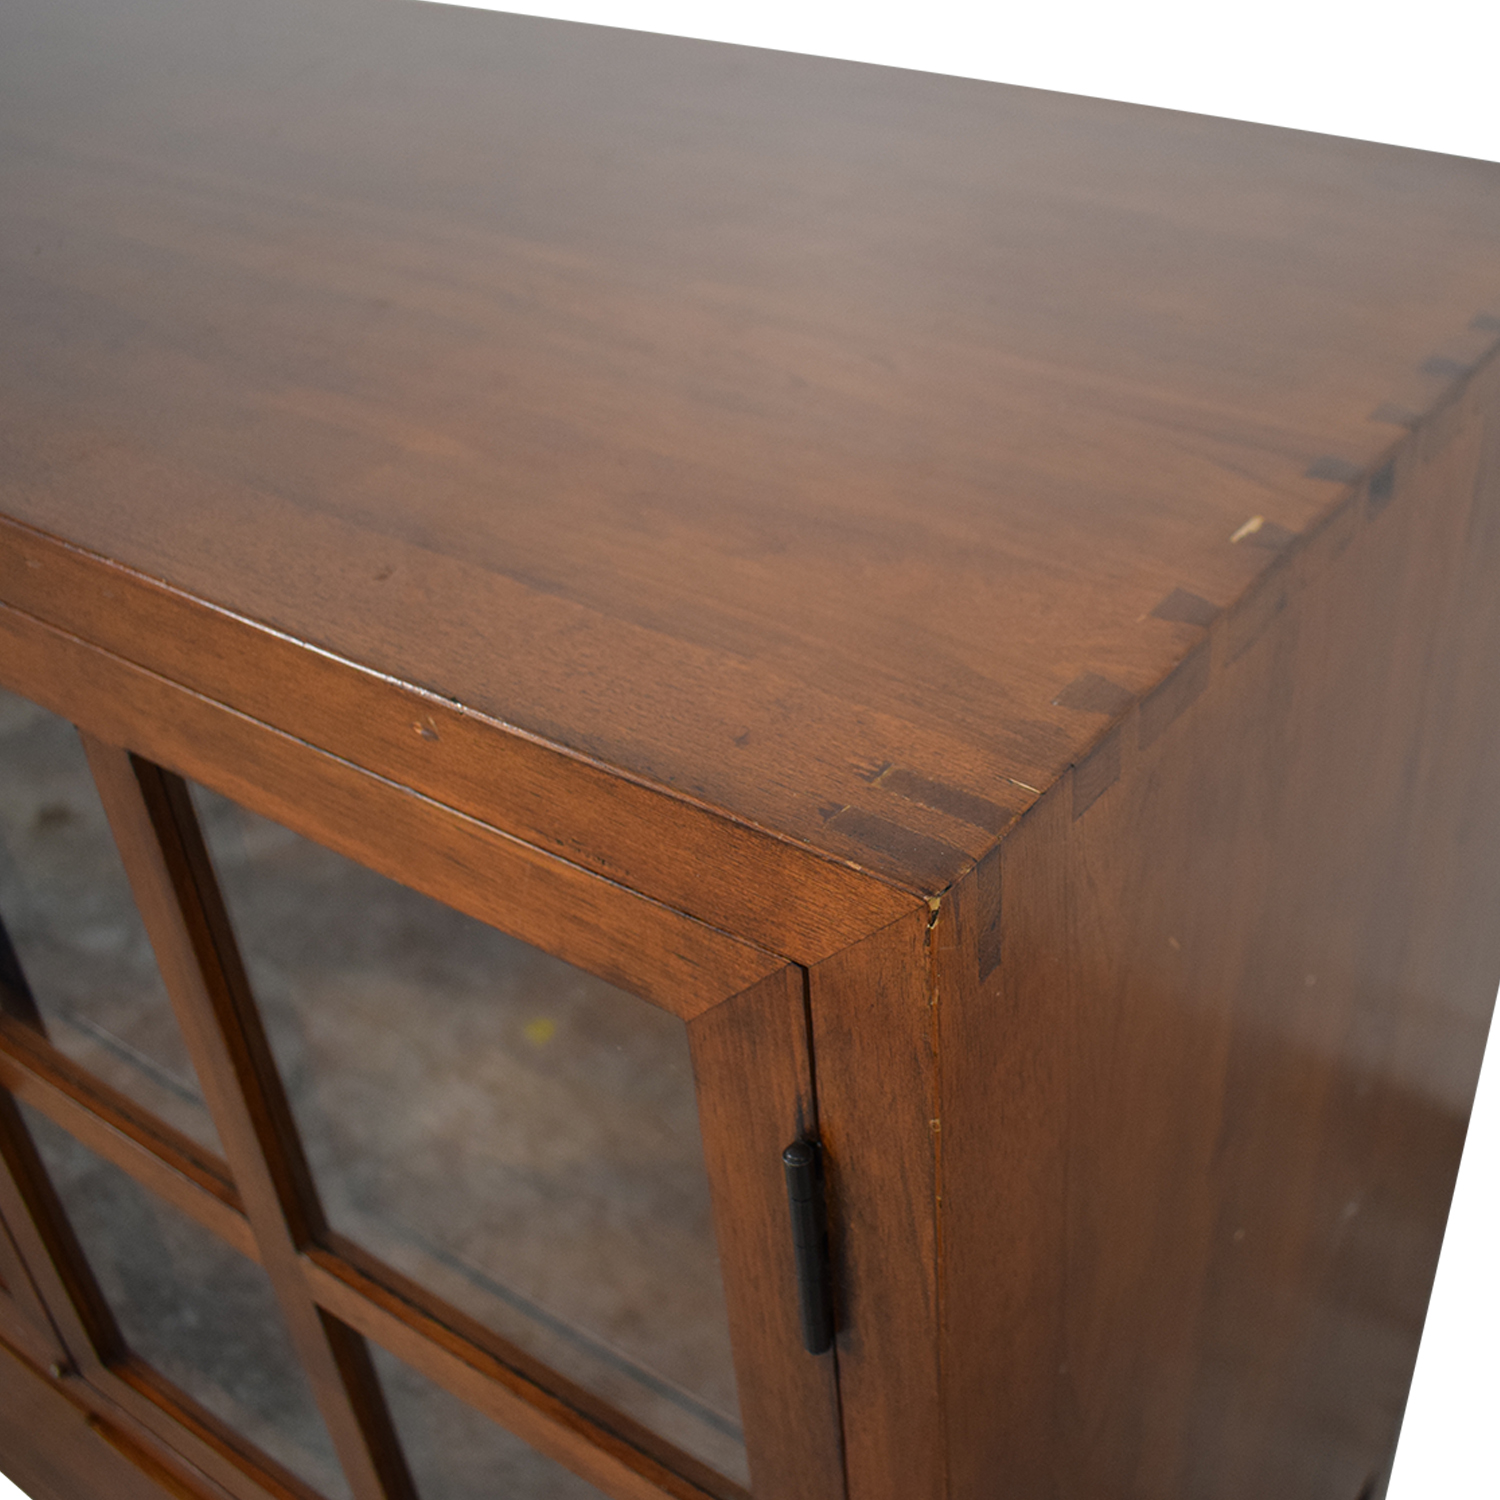 Crate & Barrel Crate & Barrel Sideboard with Glass Doors used